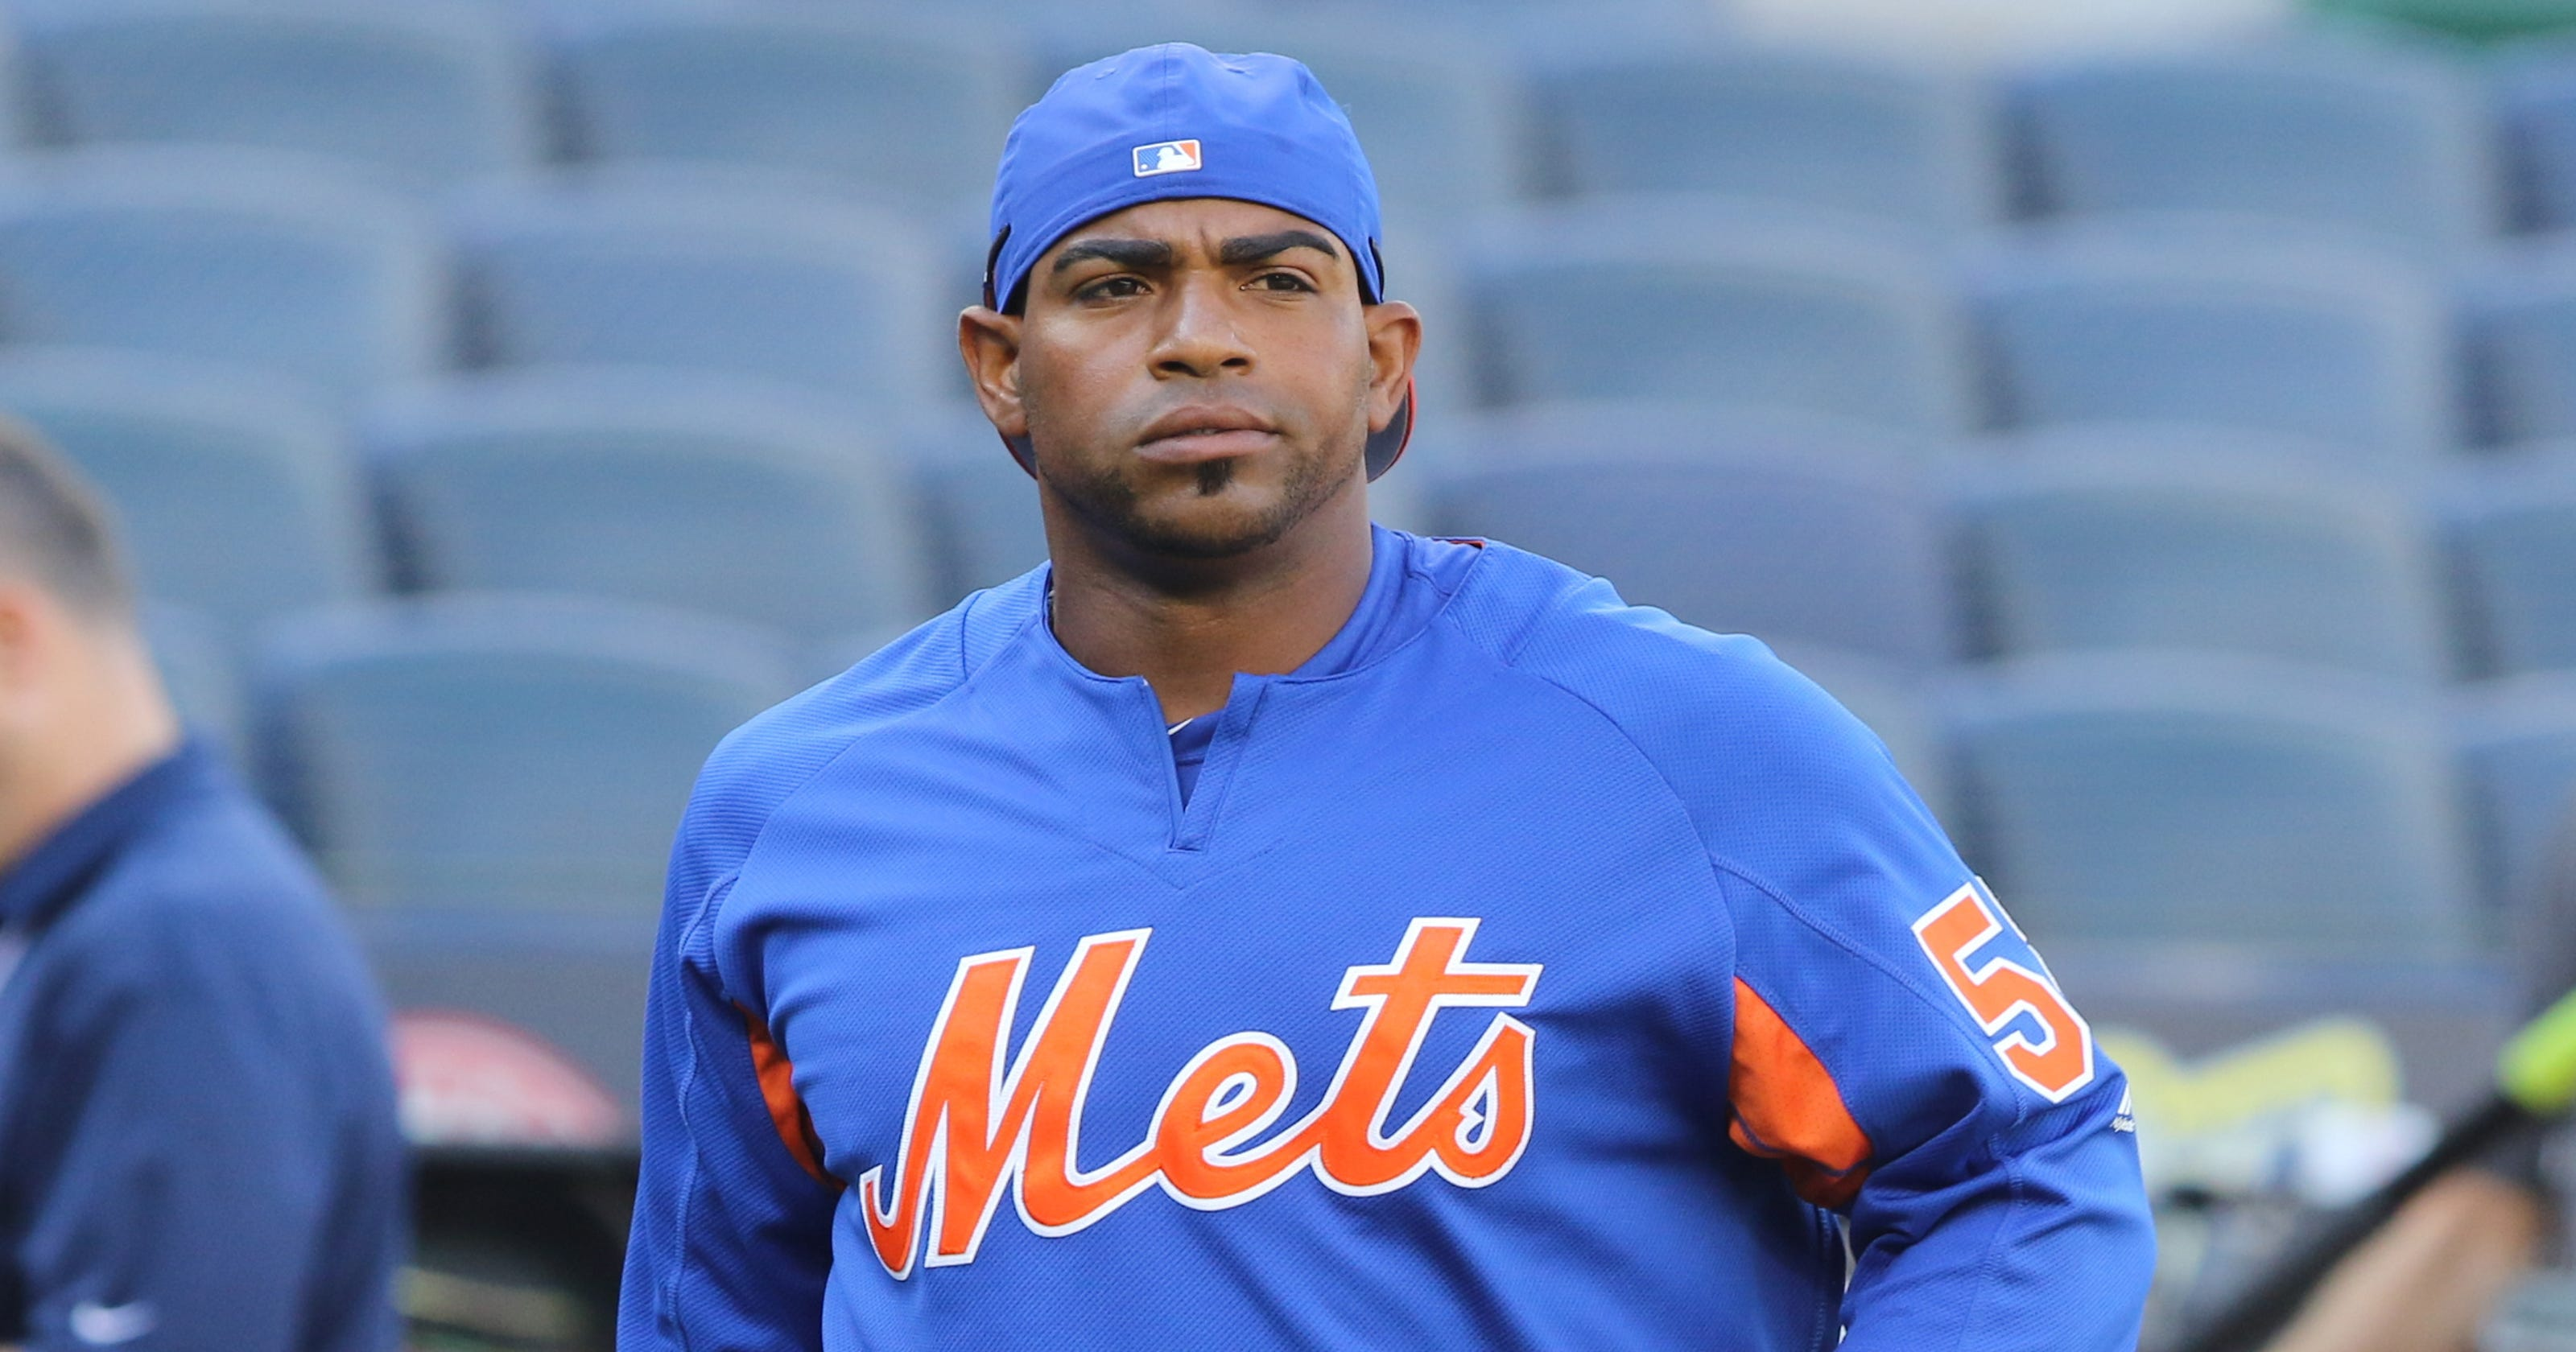 NY Mets counting on Yoenis Cespedes following surgeries fff030b0448